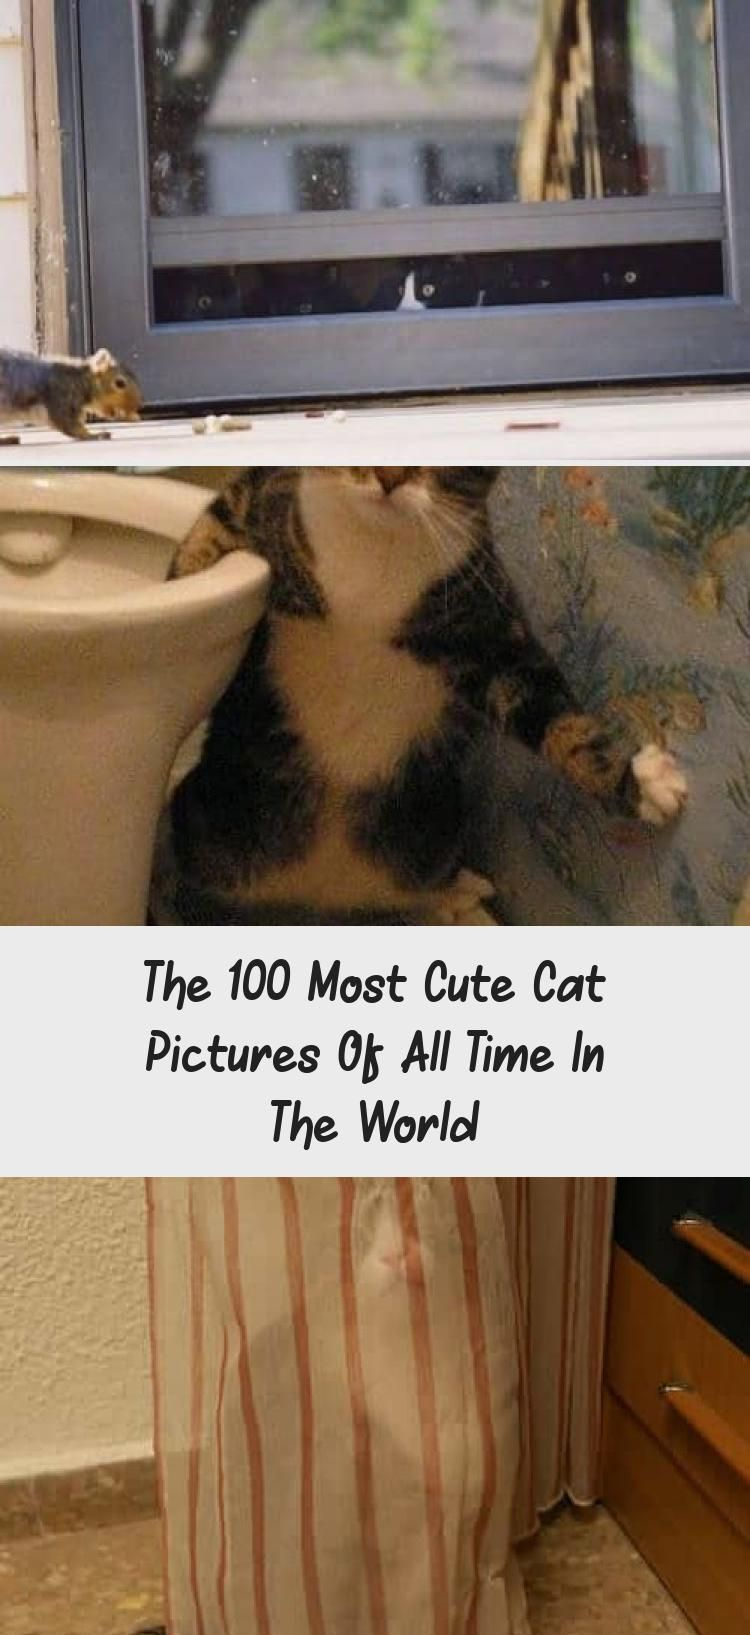 The 100 Most Cute Cat Pictures Of All Time In The World - CATS #whitekittens Squeeeee! white kitten licks window -  kitty memes cat humor funny joke gato chat #CuteCats #FunnyCats #Cat #Kittens #CatHumorArt #DogVsCatHumor #CatHumorLove #CatHumorLaughingSoHard #CatHumorBirthday